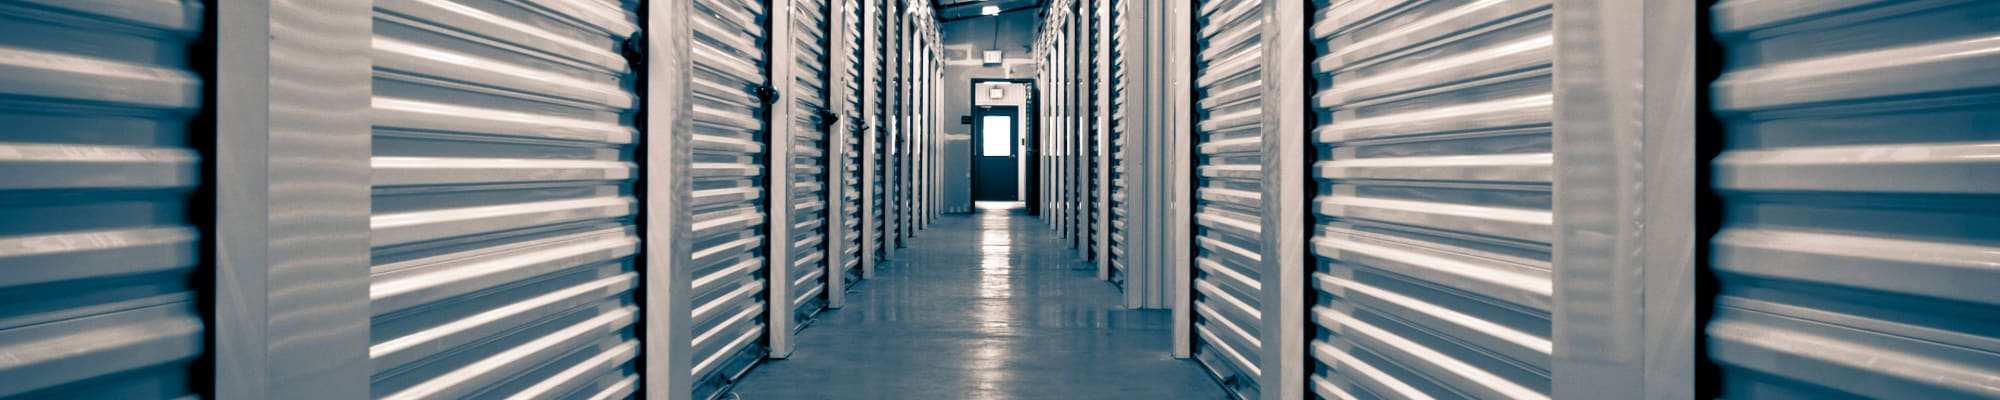 About Store It All Self Storage - Affordable in Laredo, Texas